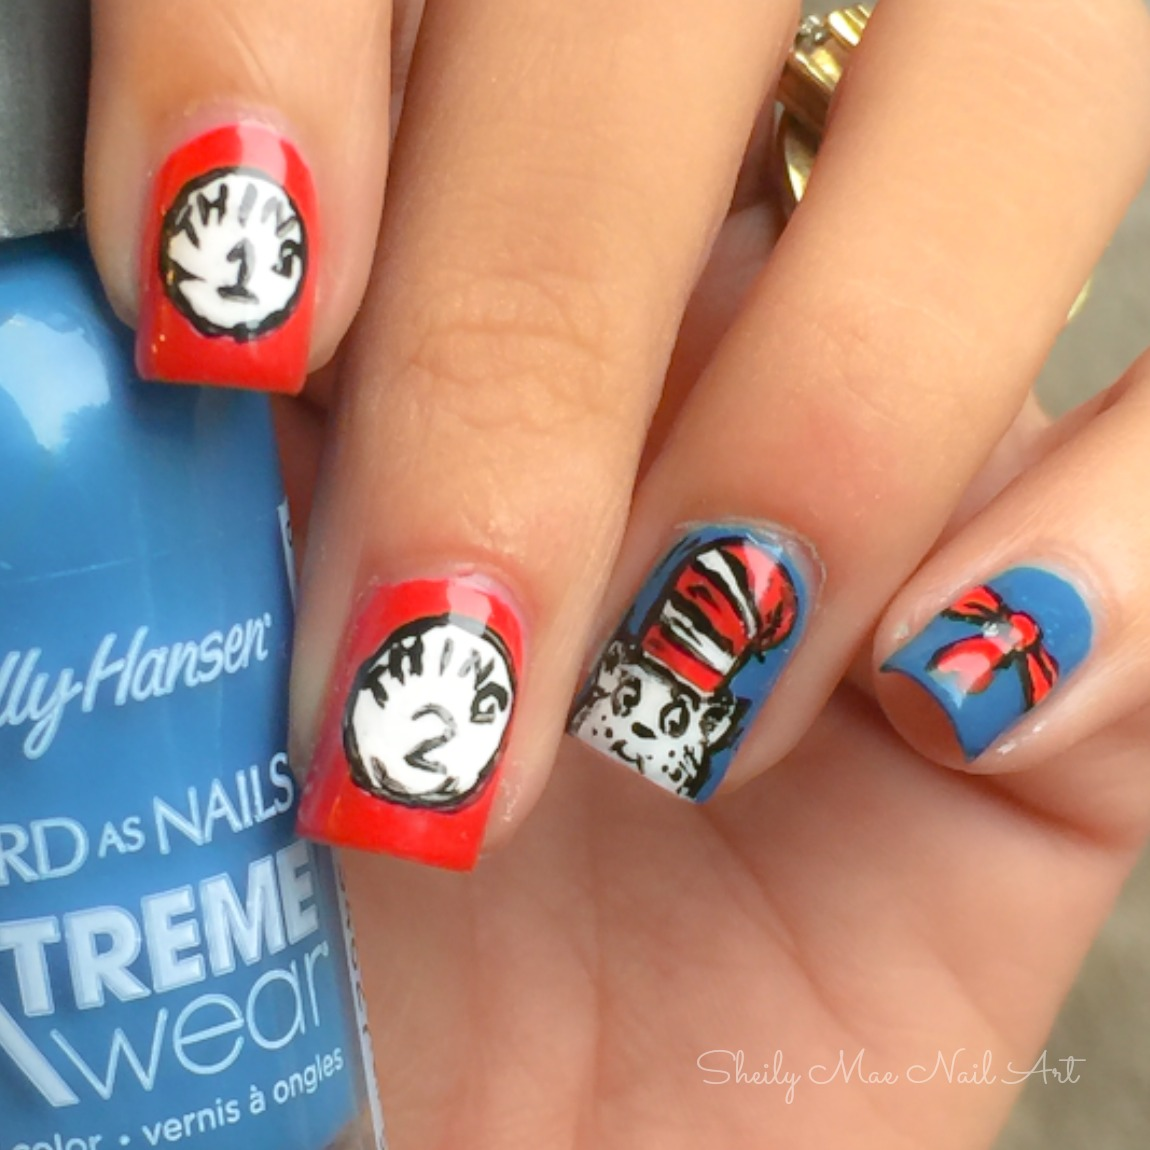 Cat in the Hat Nail Art + Besties Twin Nails - Sheily Mae Nail Art